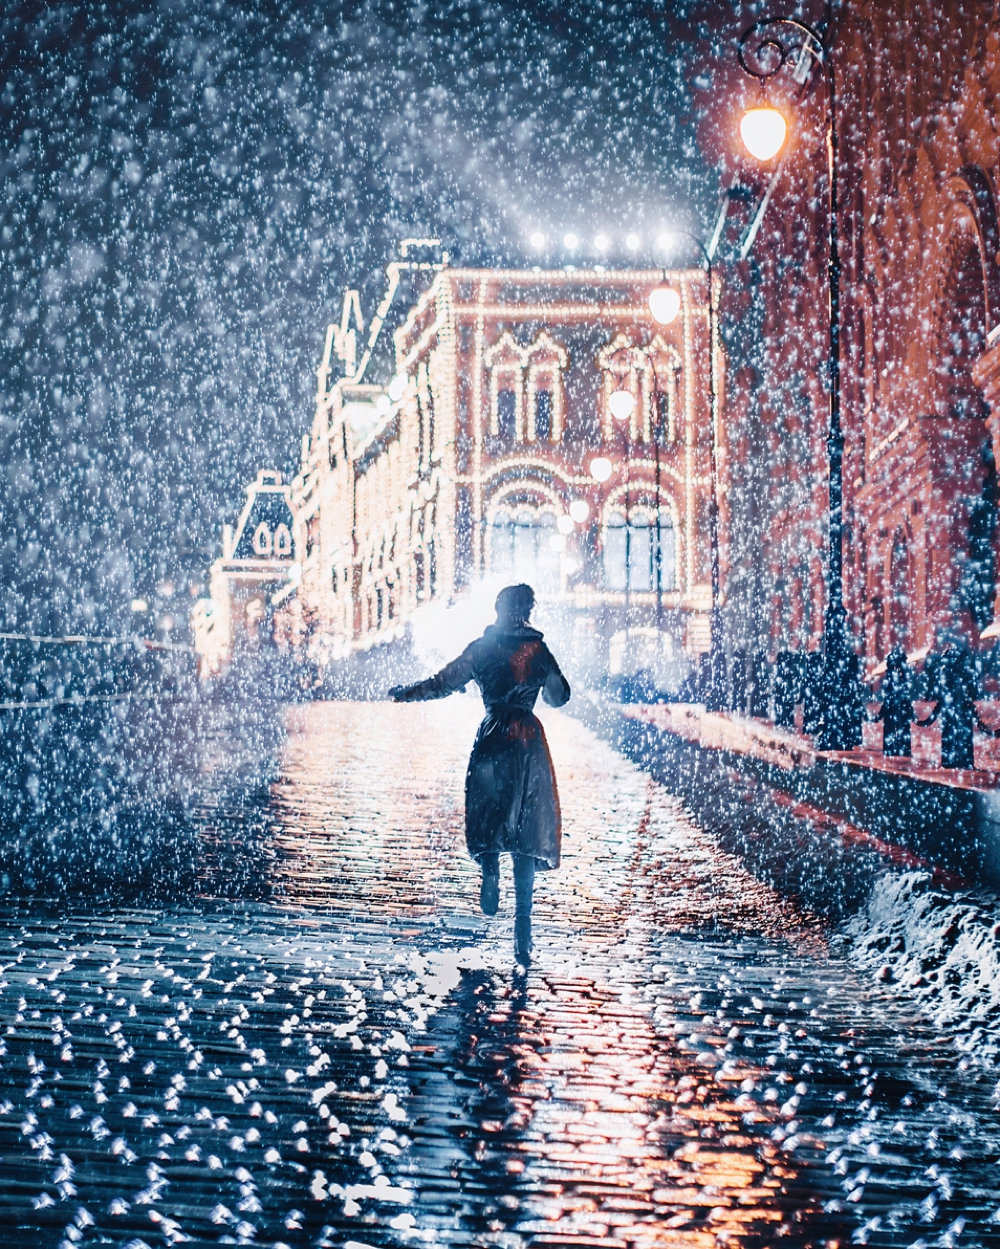 kristina-makeeva-moscow-fairytale-winter_0015